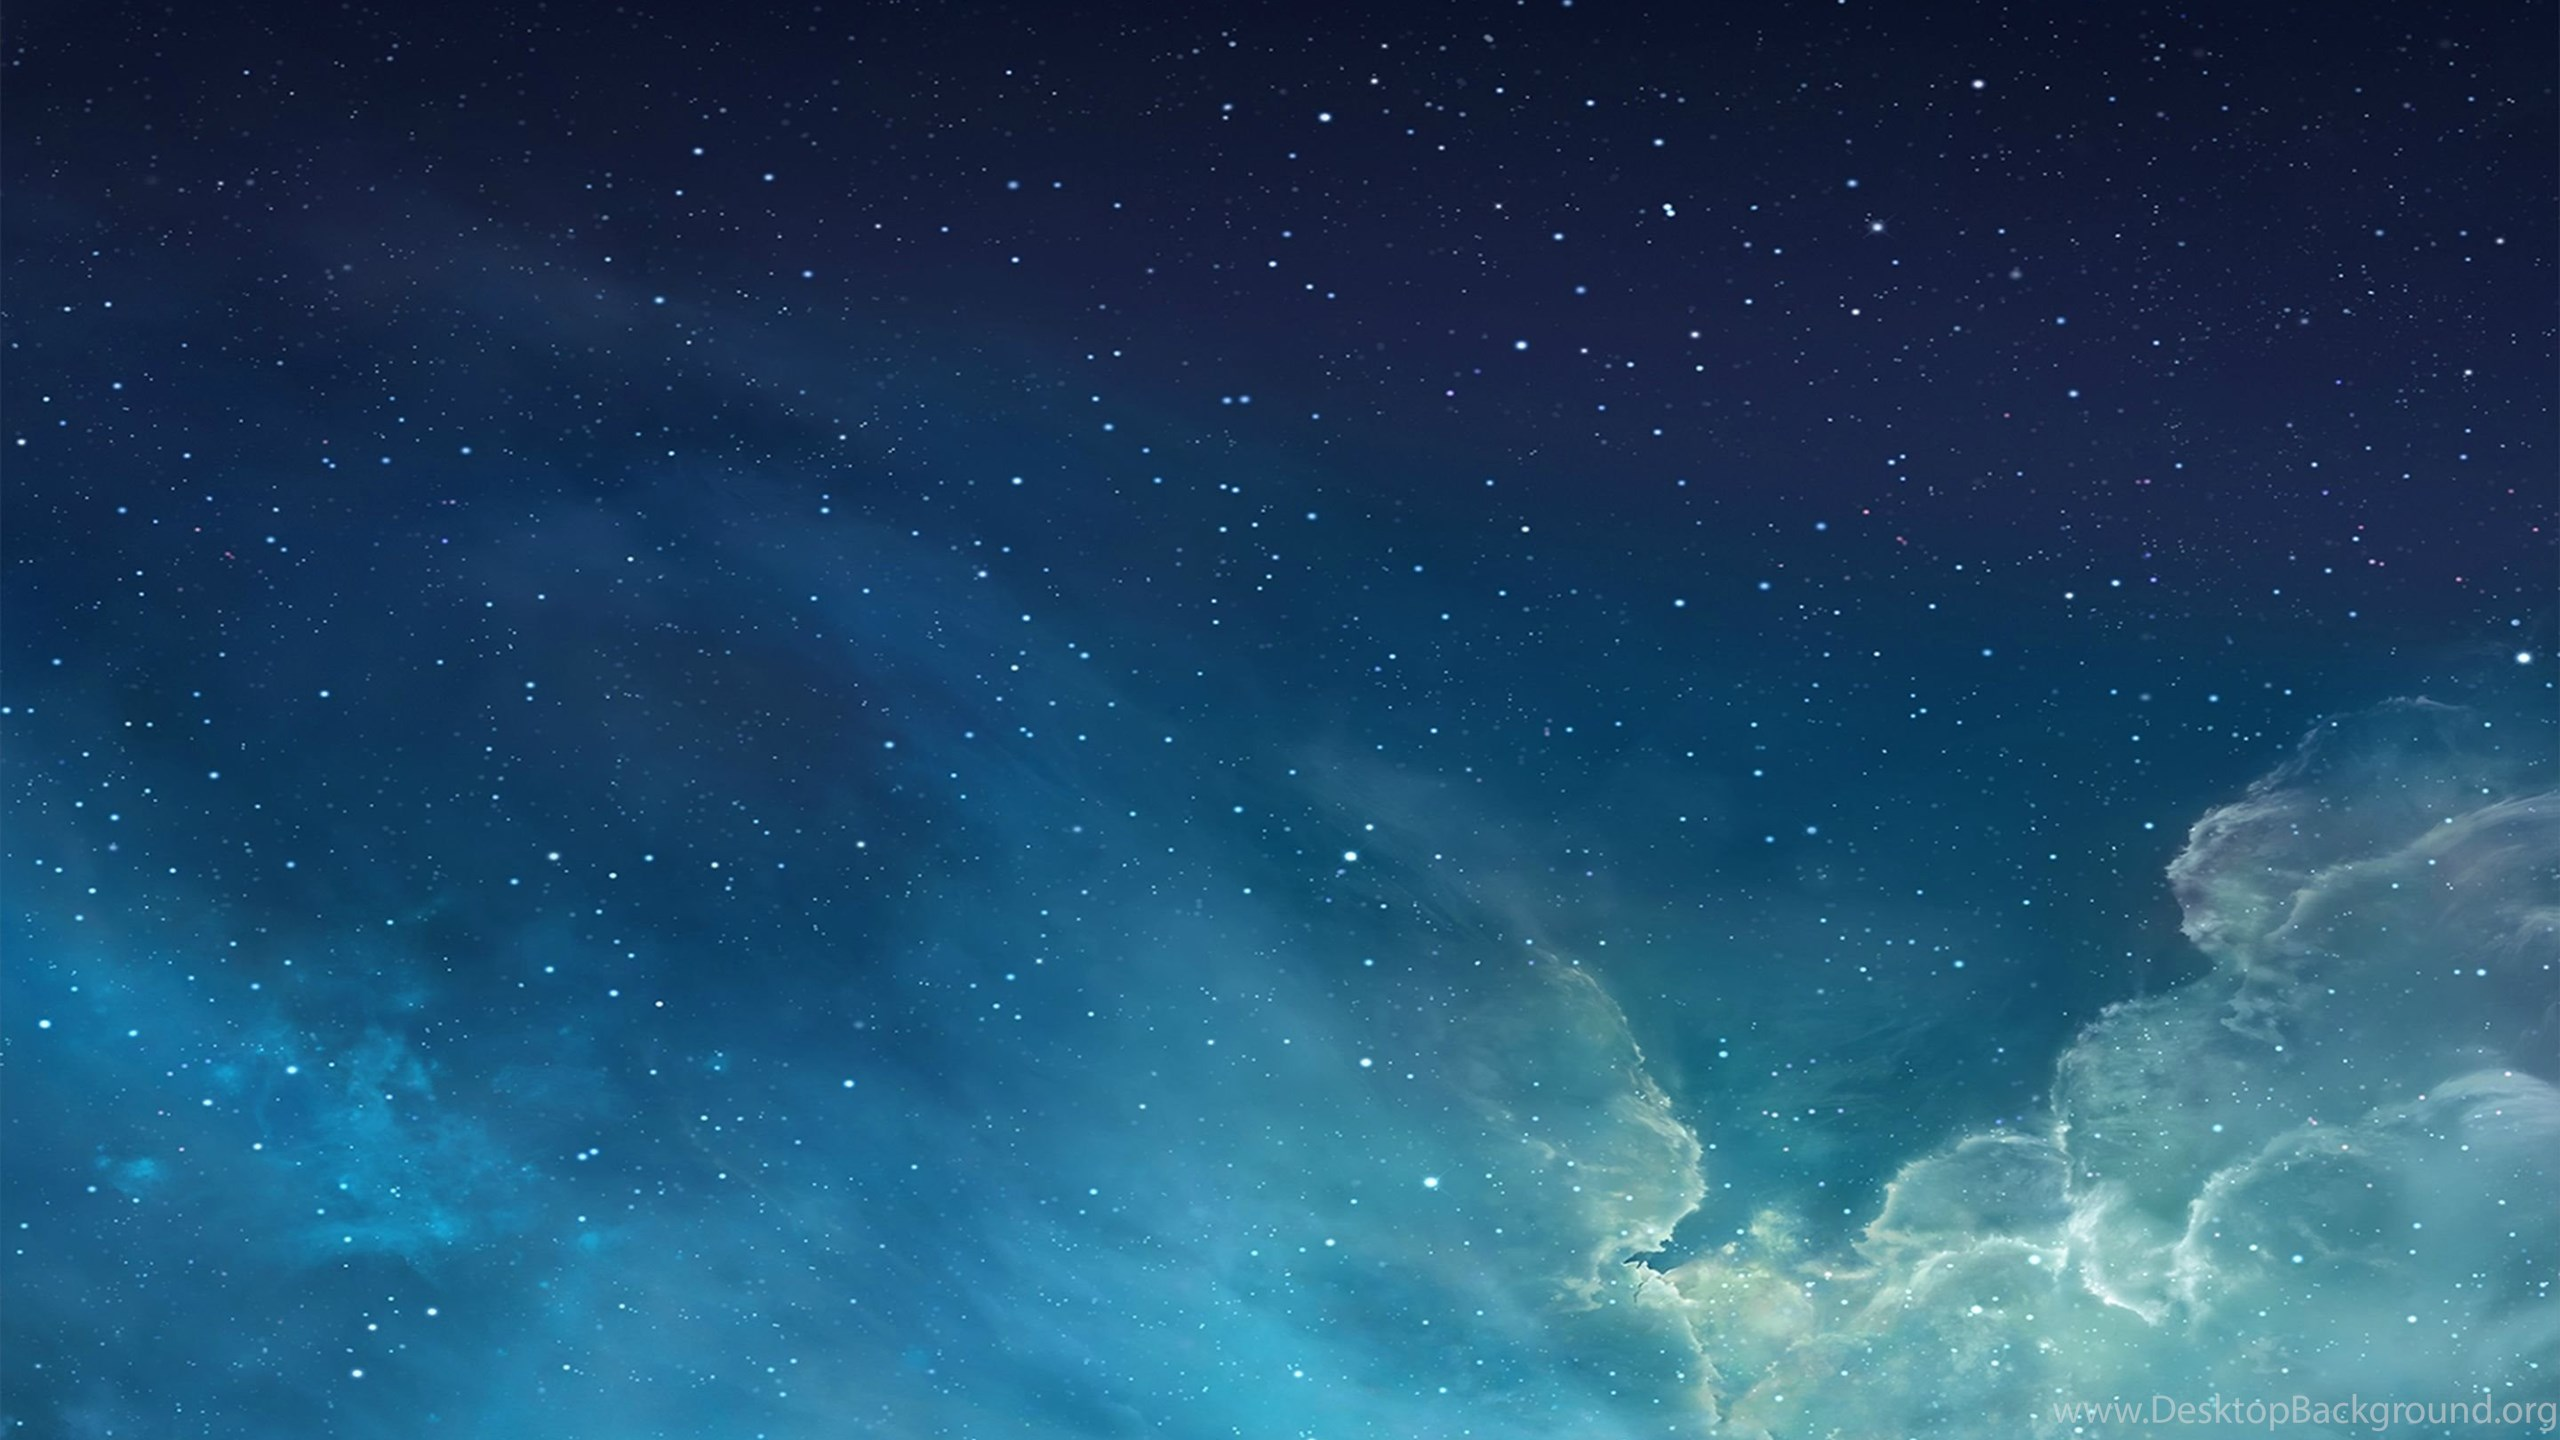 ios 7 galaxy wallpapers for the desktop [2880 × 1800] : wallpapers